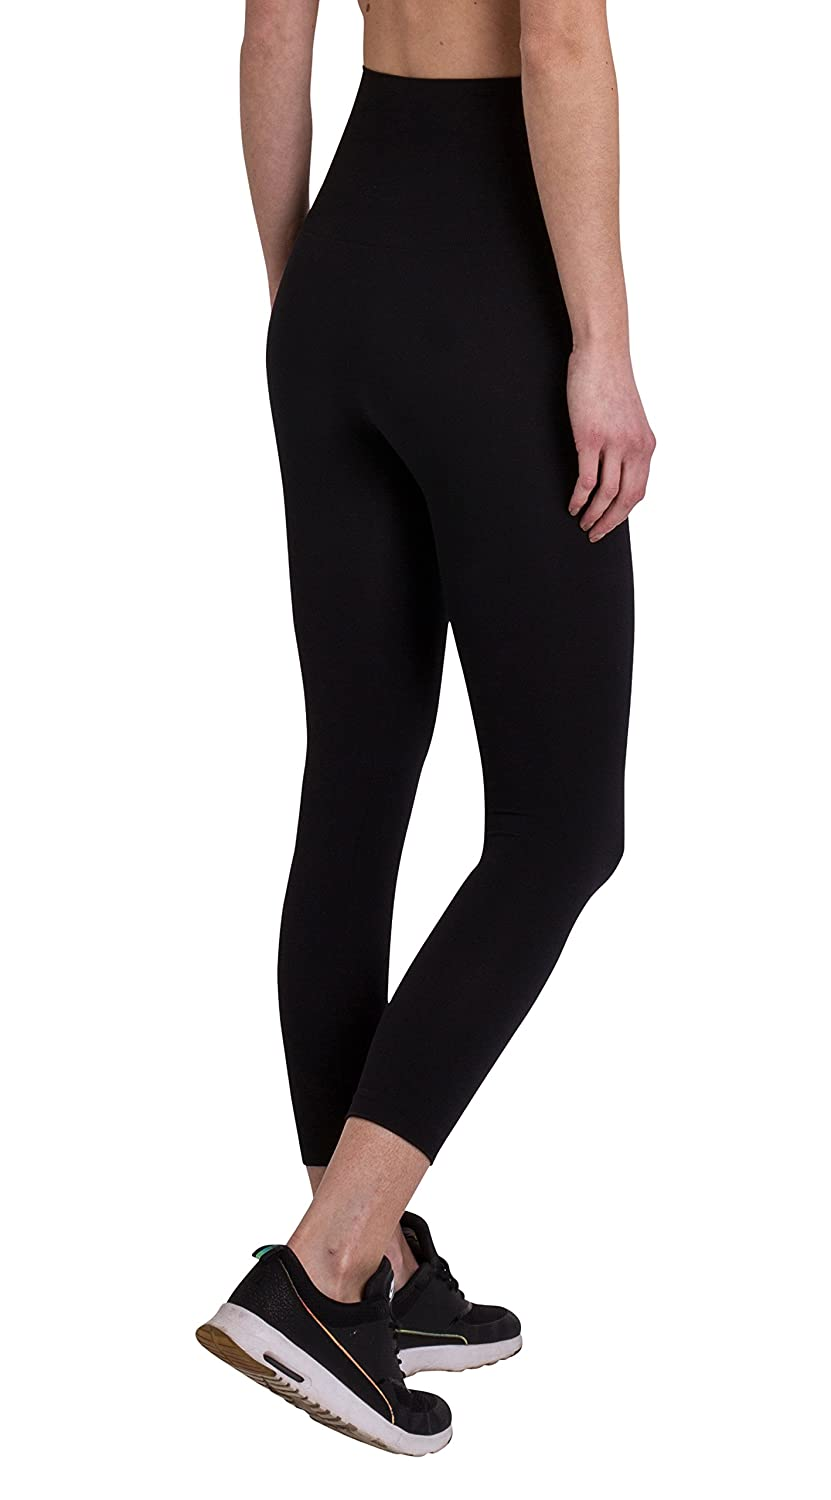 FM London Black High Waisted Shaper Leggings Donna